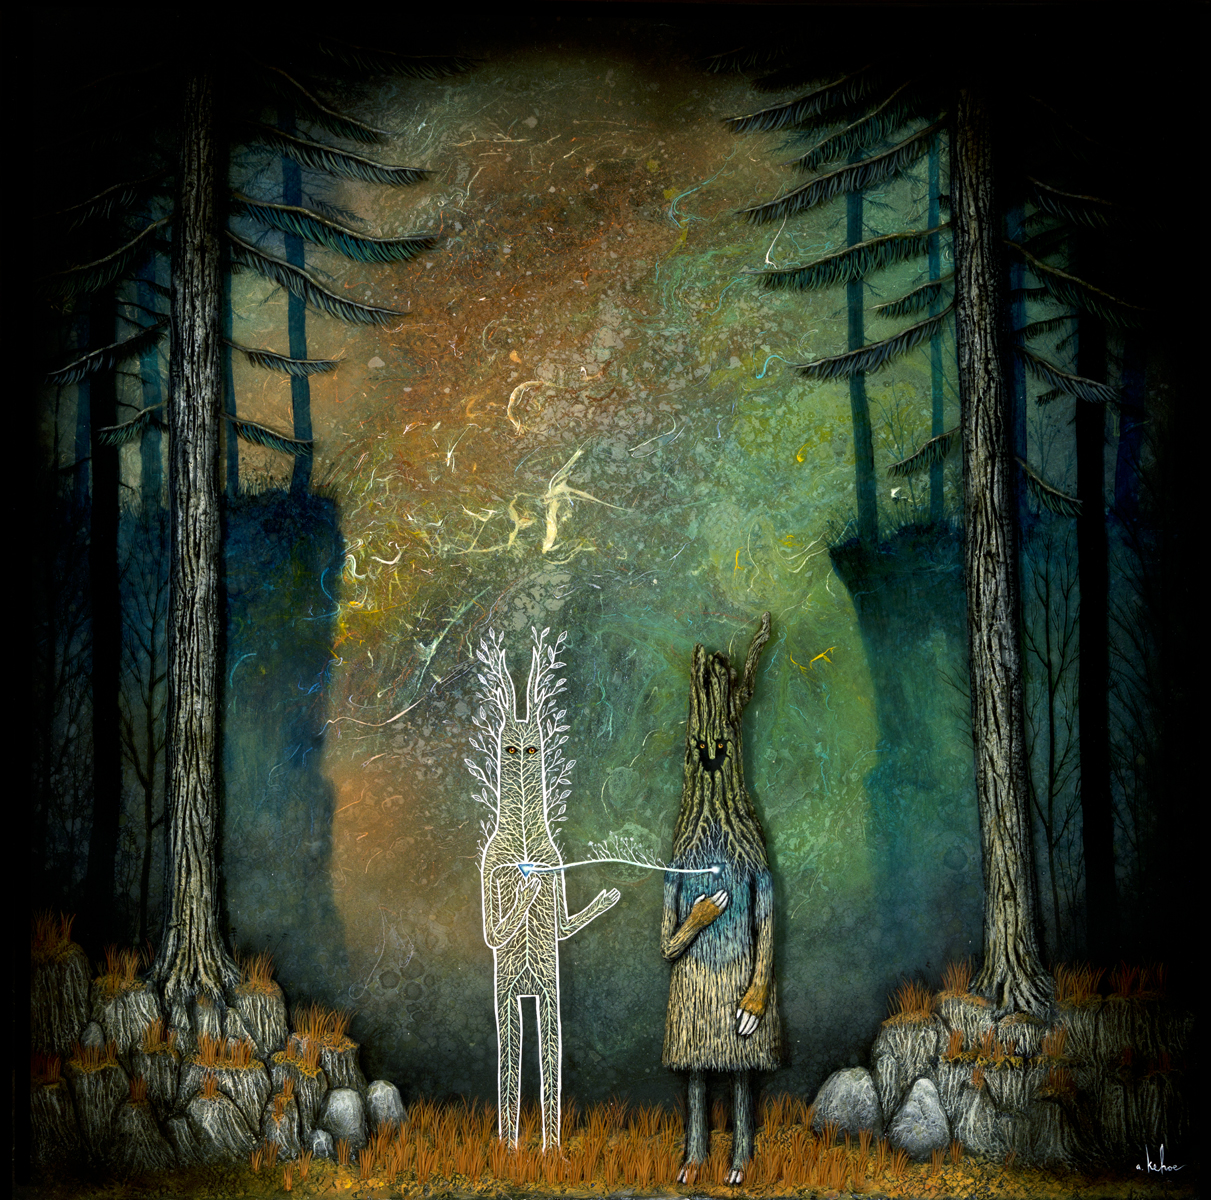 Invoking the Heart of the Forest